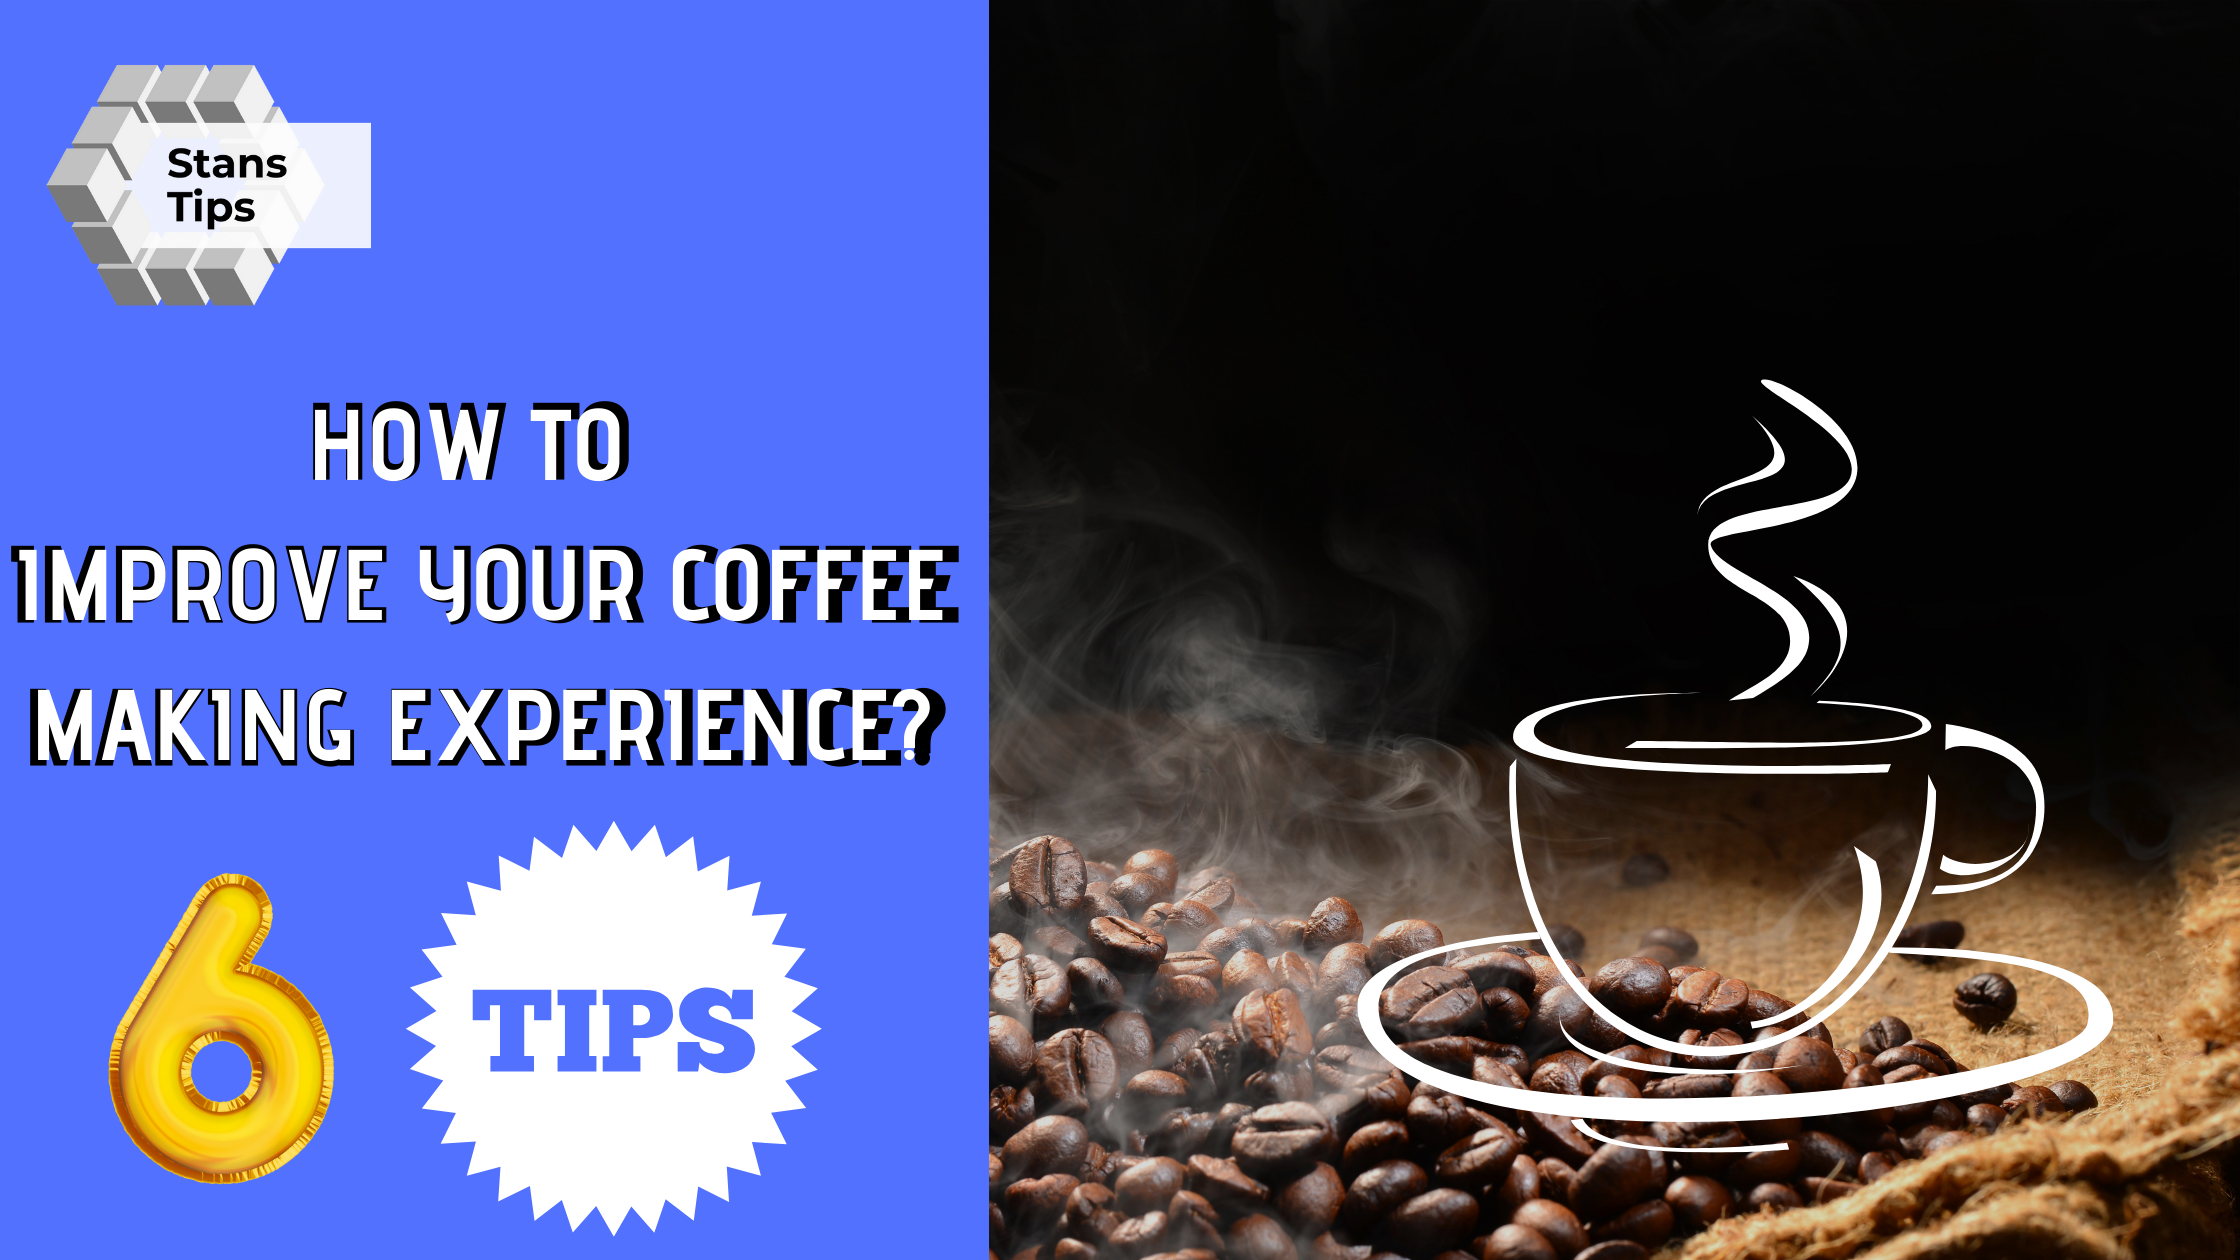 How To Improve Your Coffee Making Experience